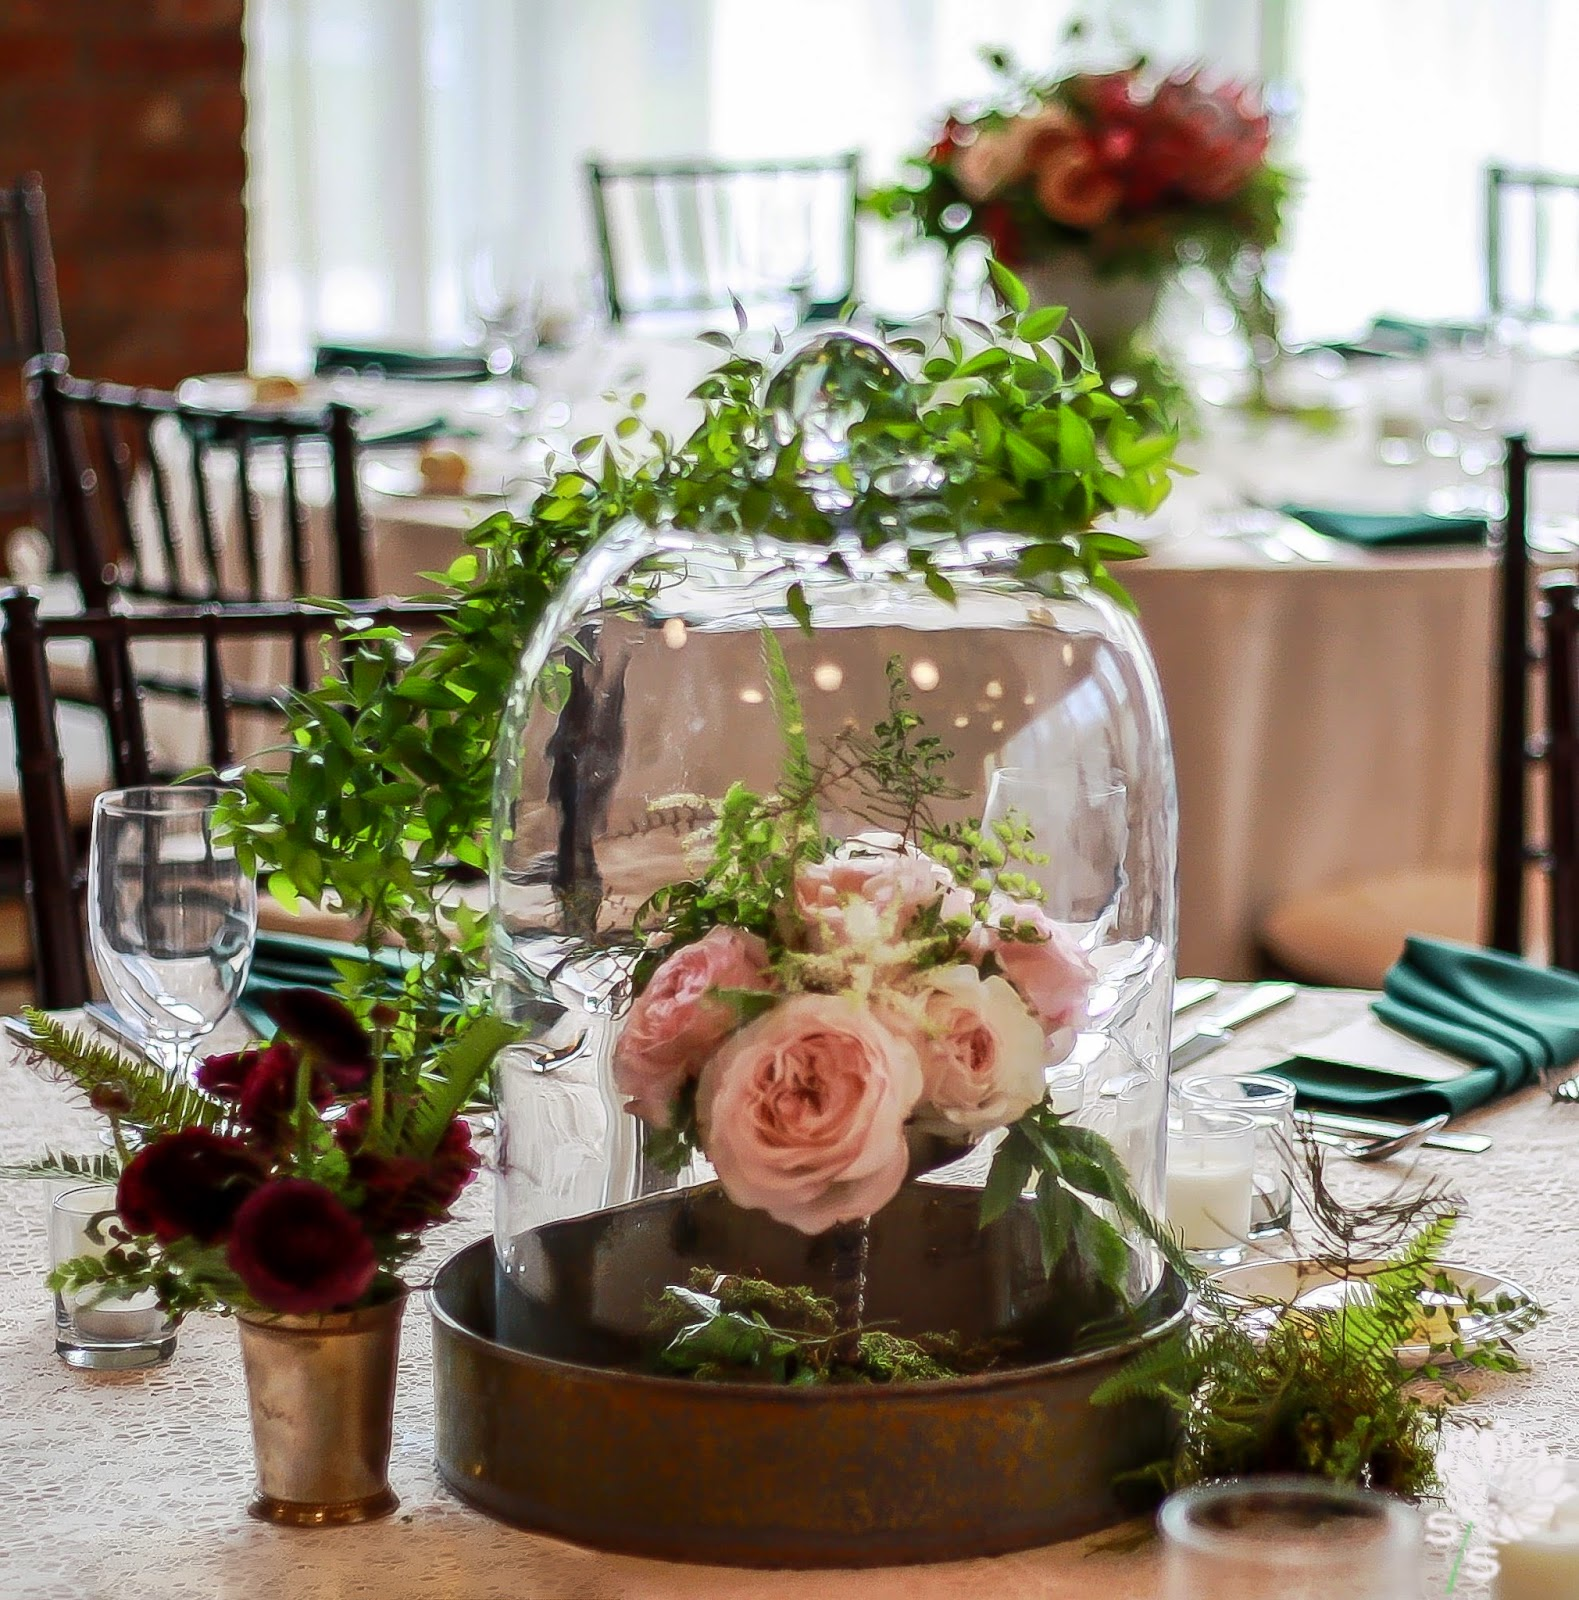 The Roundhouse Wedding - Beacon, NY - Hudson Valley Wedding - Table Centerpiece - Glass Cloch, Mint Julep Cup, Compote Dish Old Books - Wedding Flowers - Splendid Stems Floral Designs